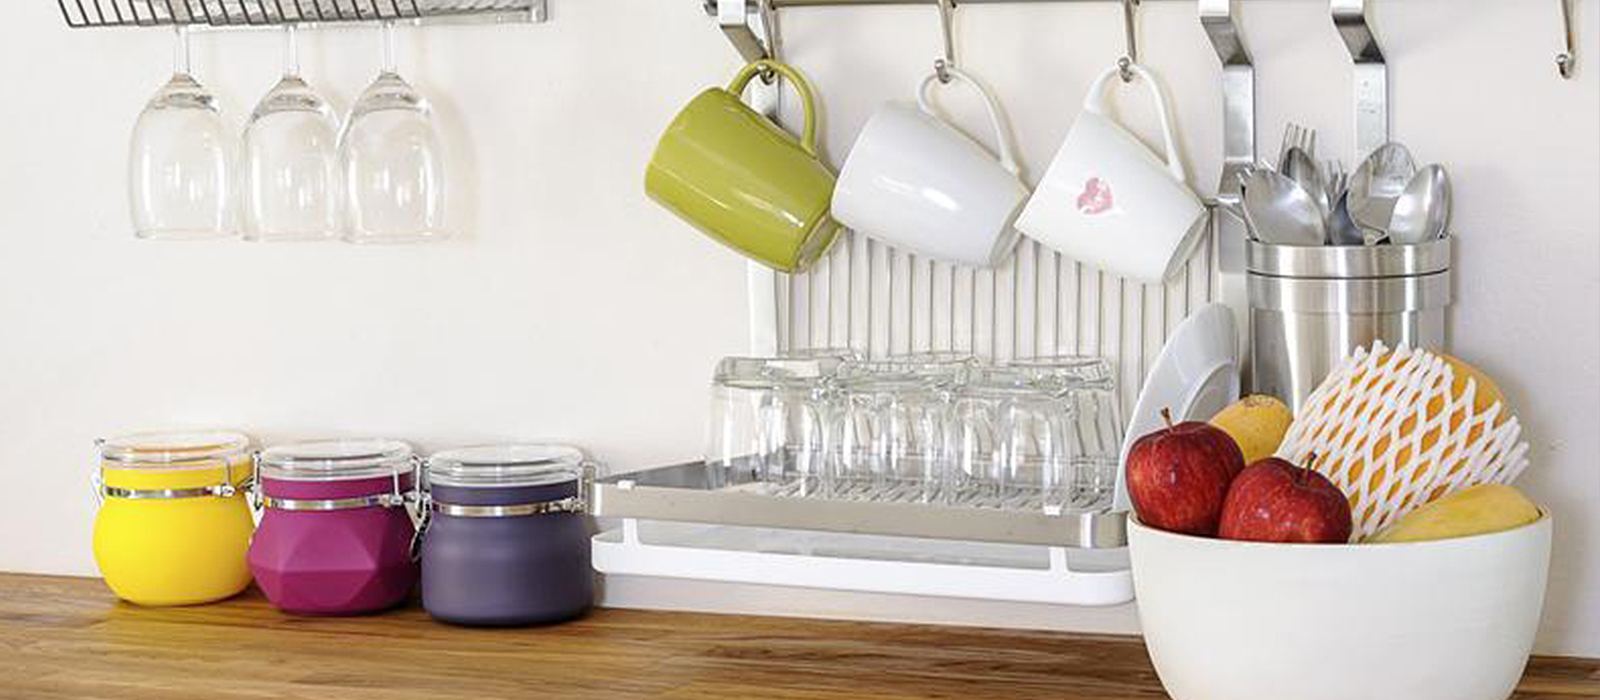 Health & Wellness: Declutter Your Kitchen to Lose Weight | Get Old